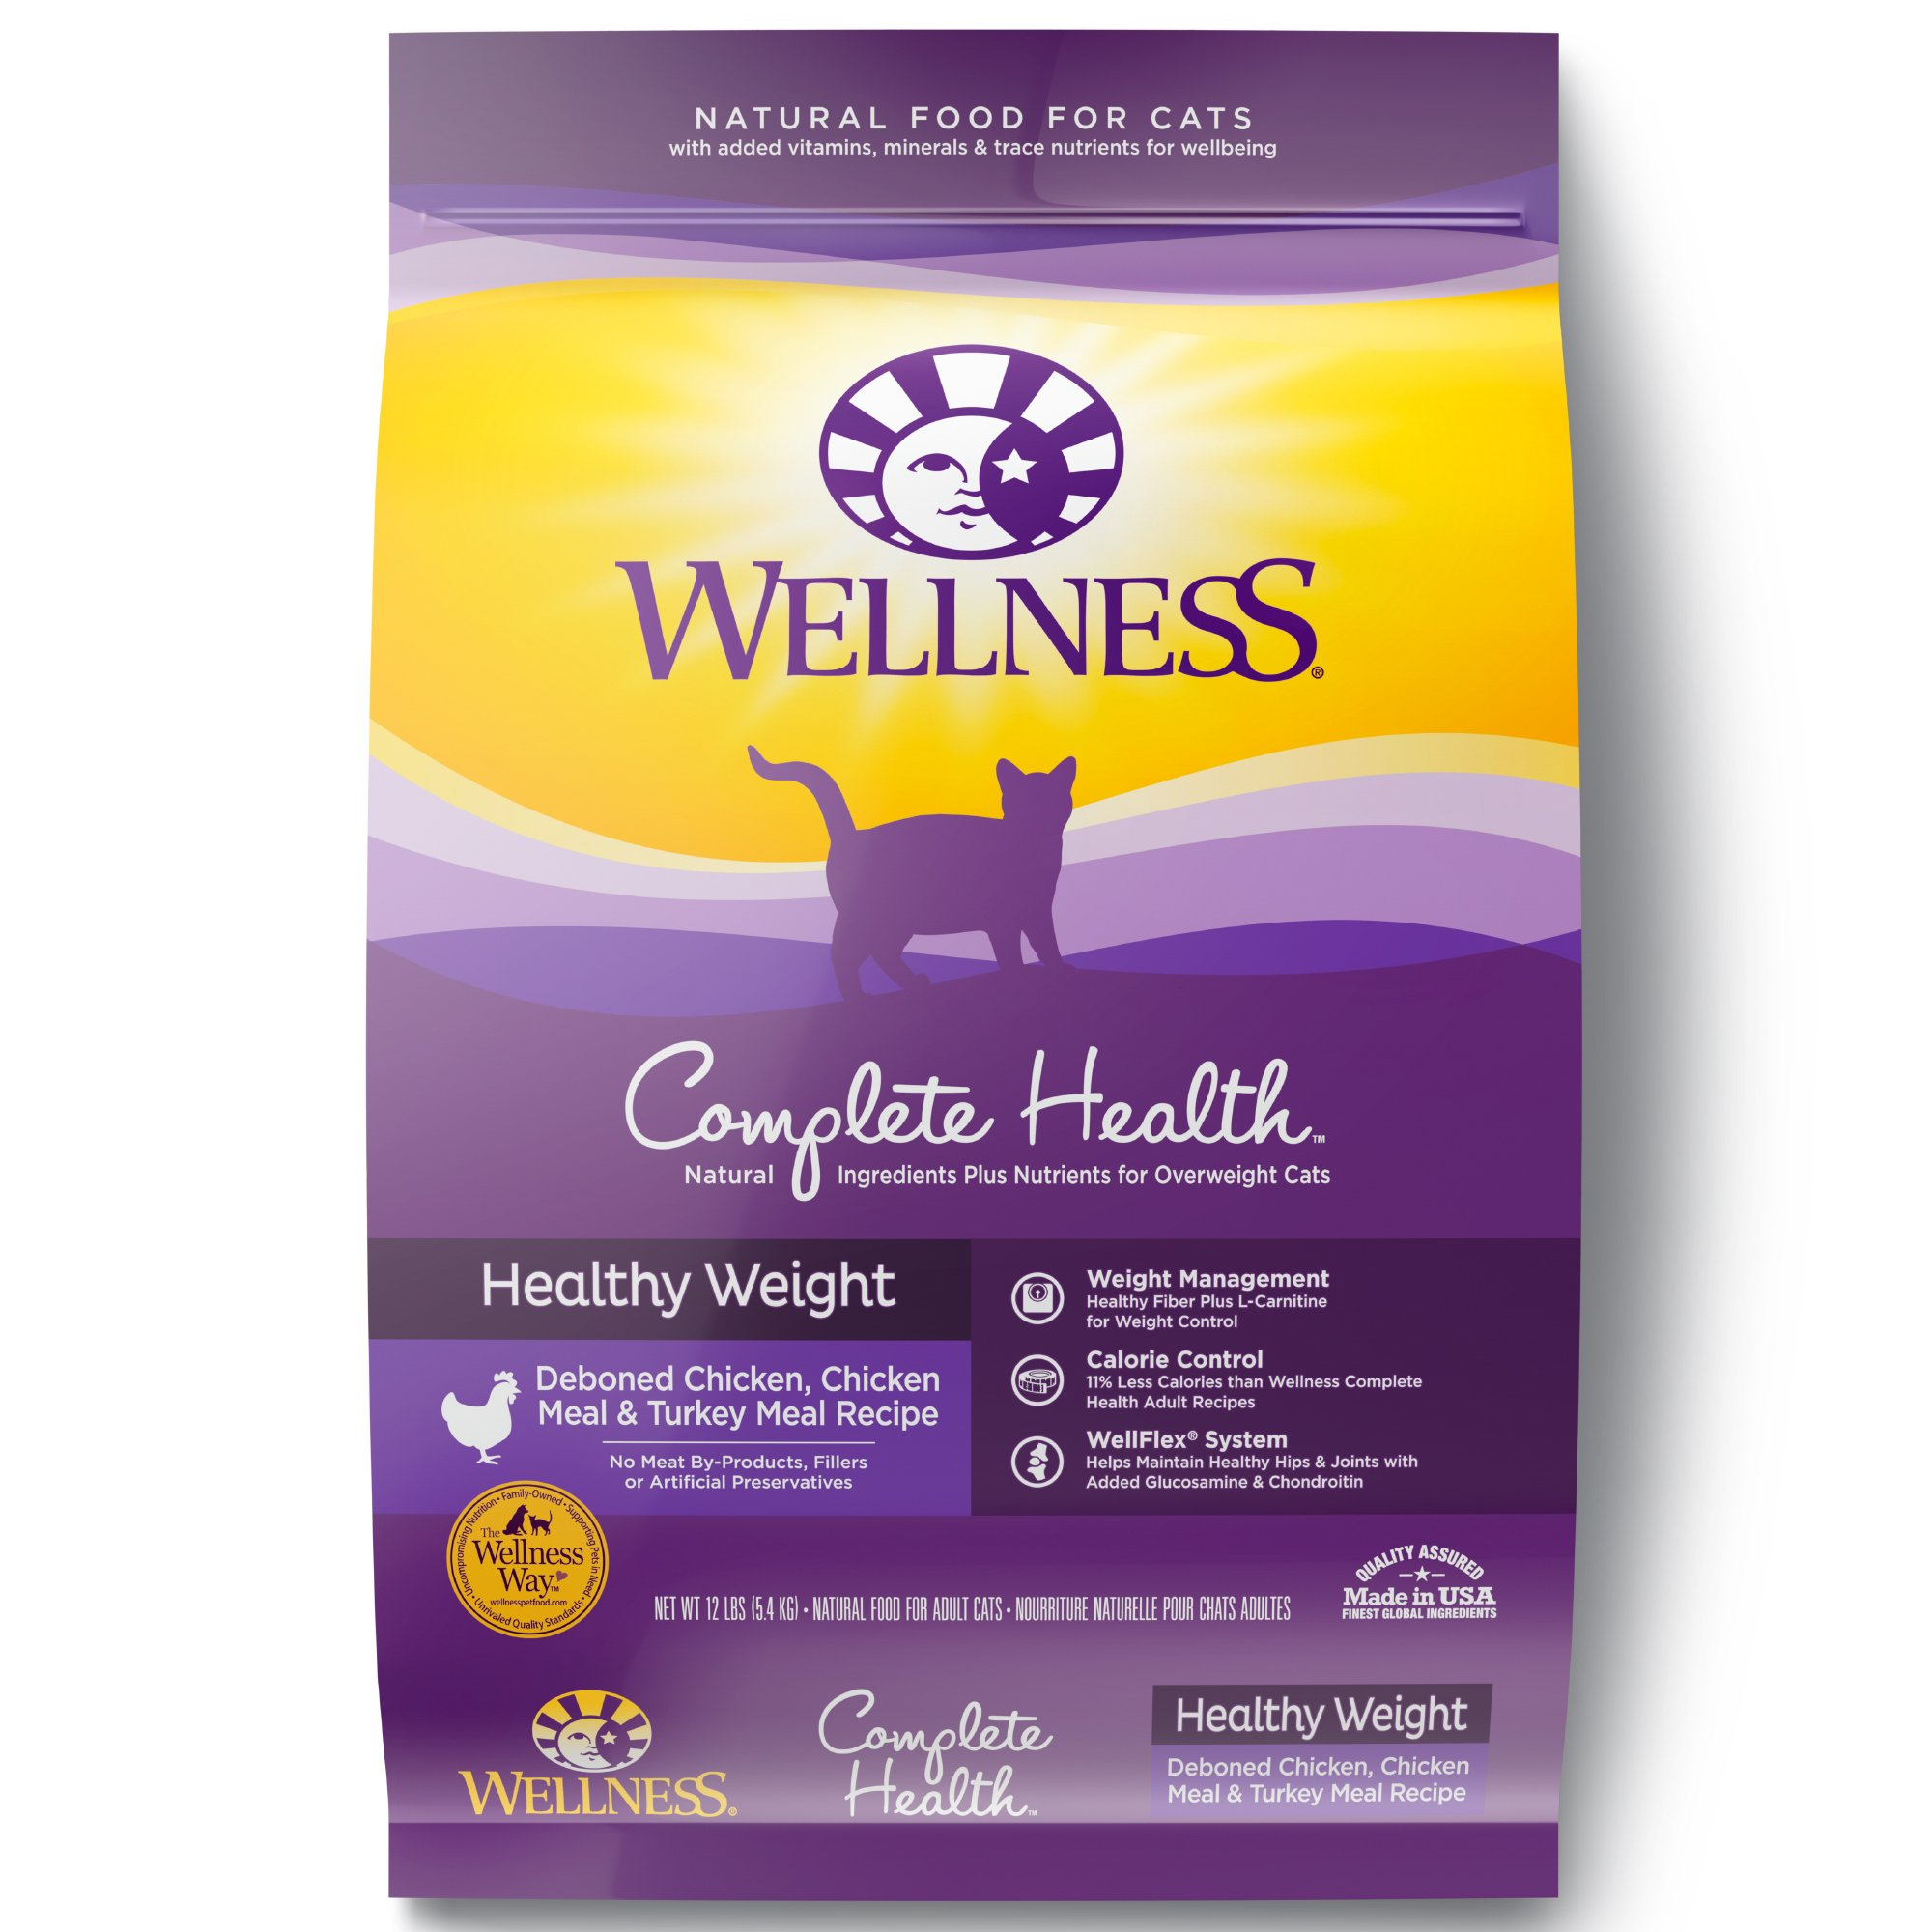 Wellness Complete Health Natural Dry Healthy Weight Cat Food, Chicken & Whitefish, 11.5-Pound Bag